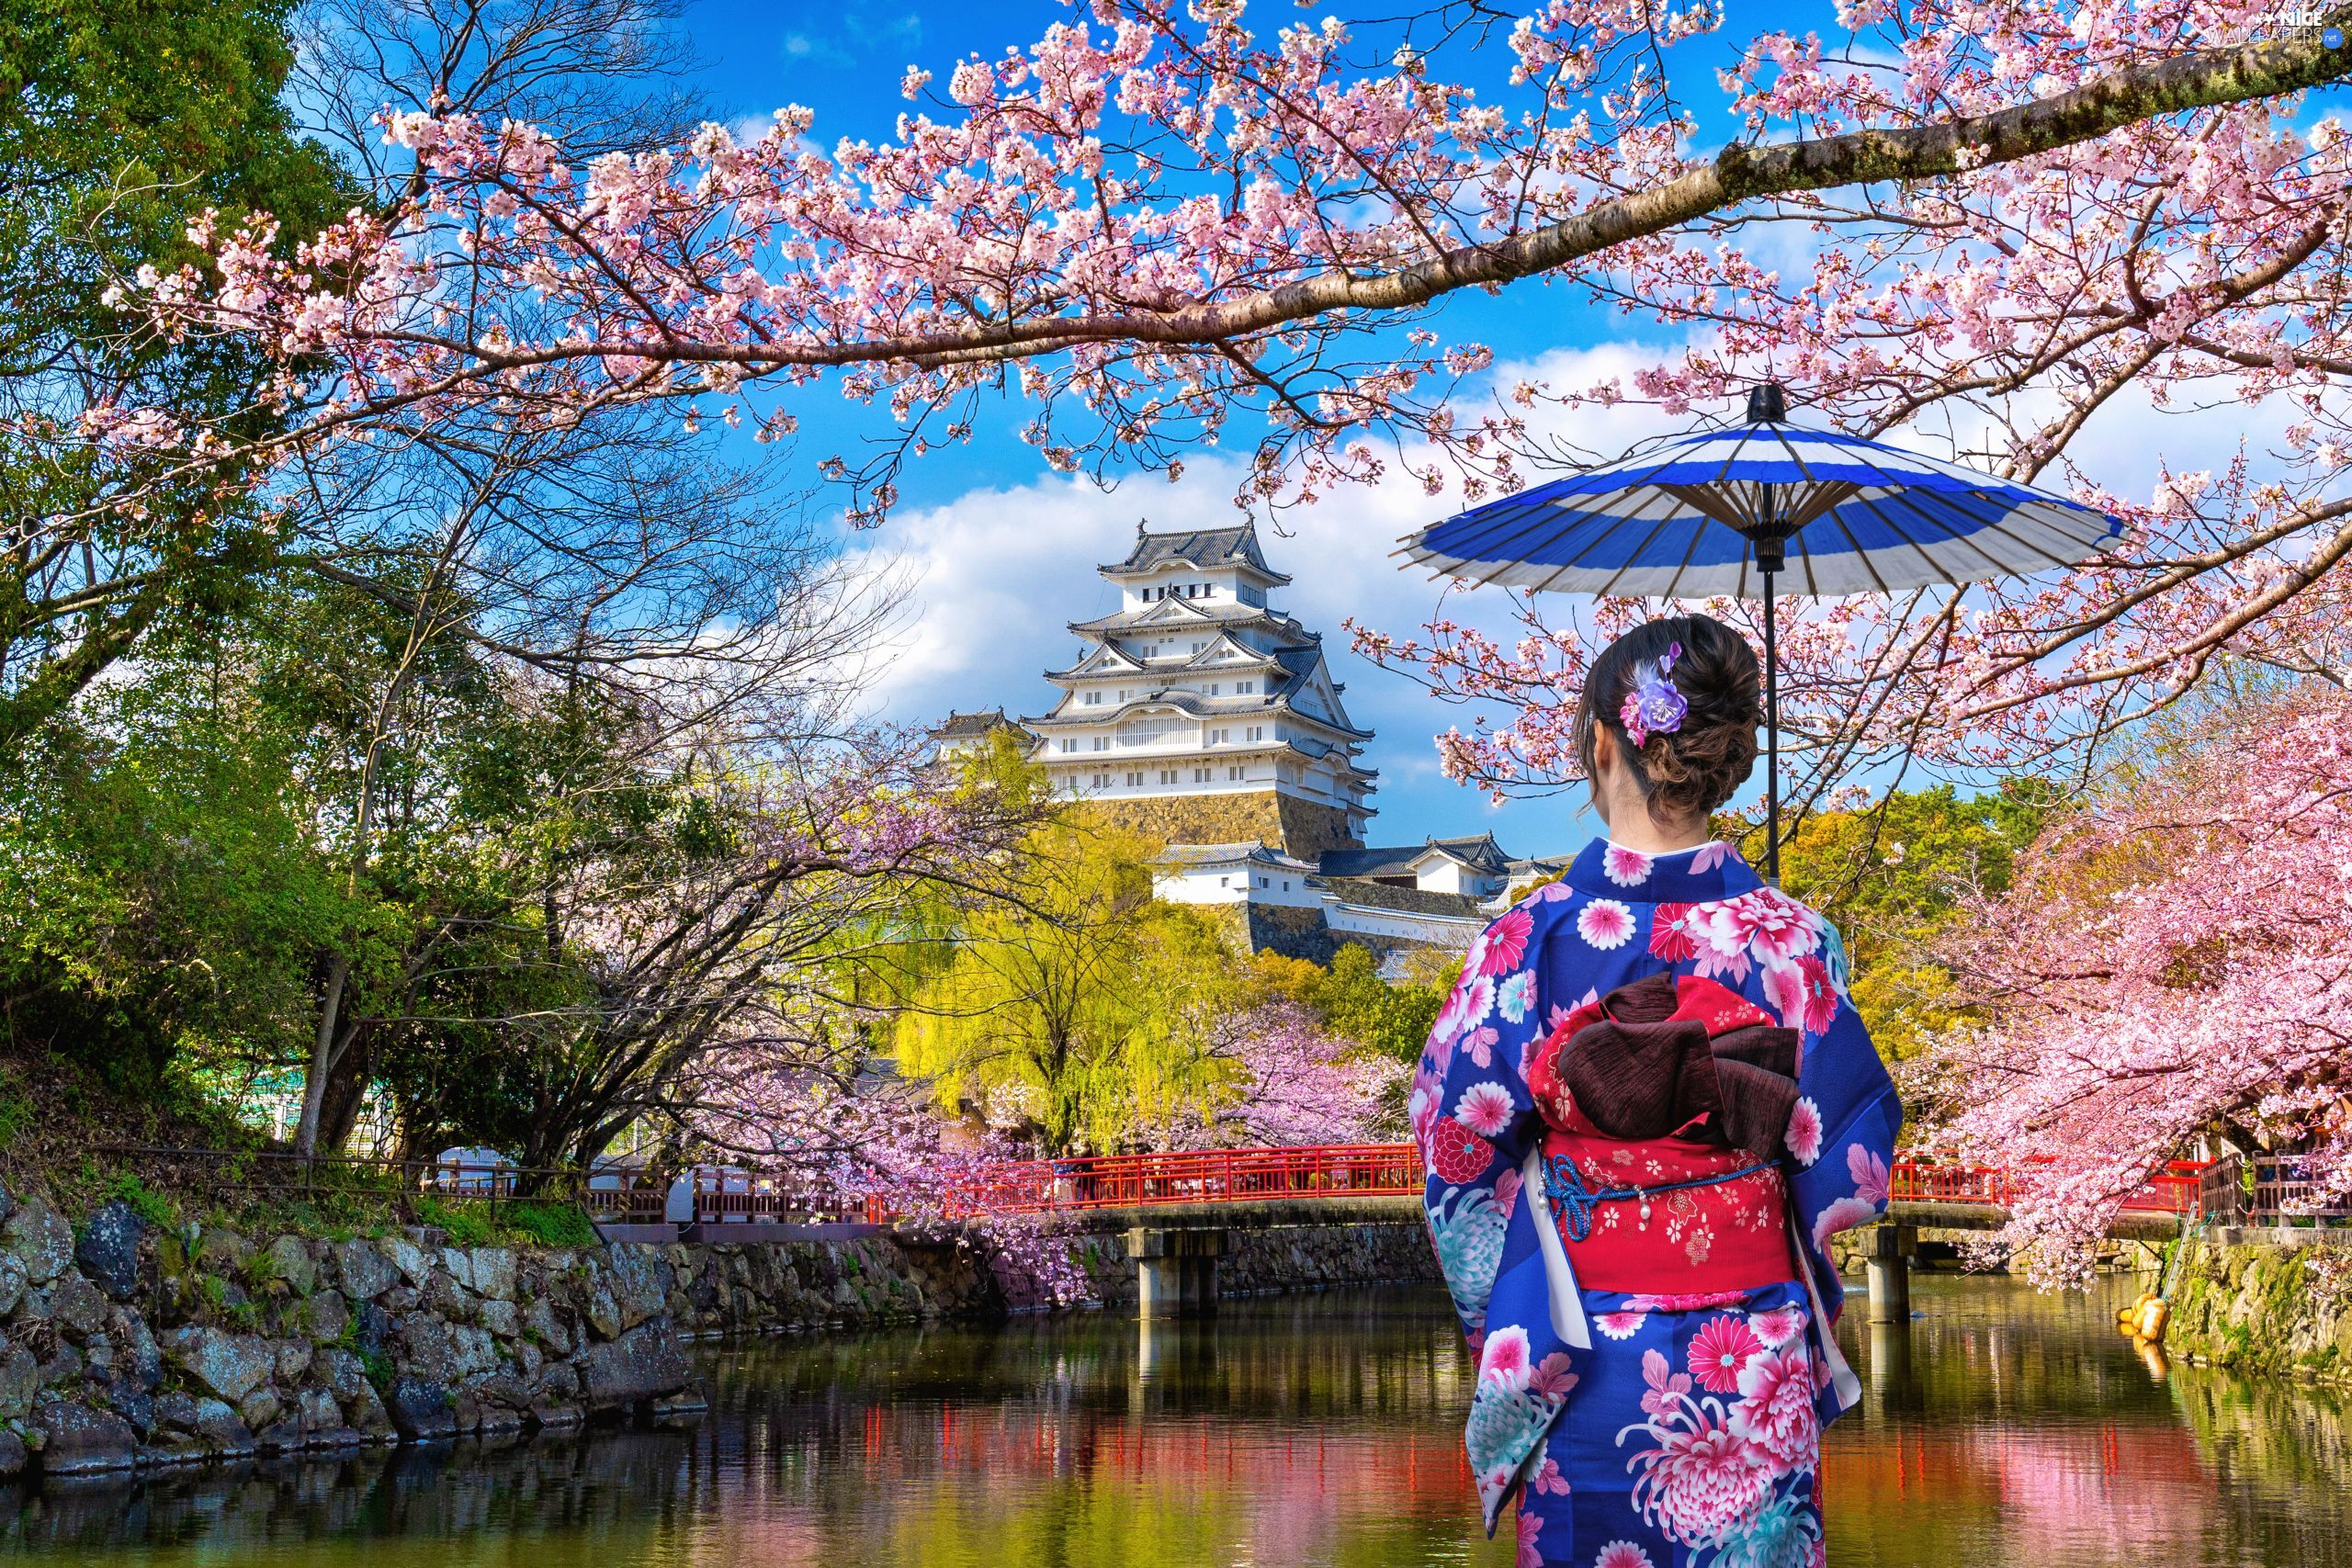 Women, Himeji Castle, Spring, umbrella, trees, Japan, Himeji Village, River, White Heron Castle, viewes, flourishing